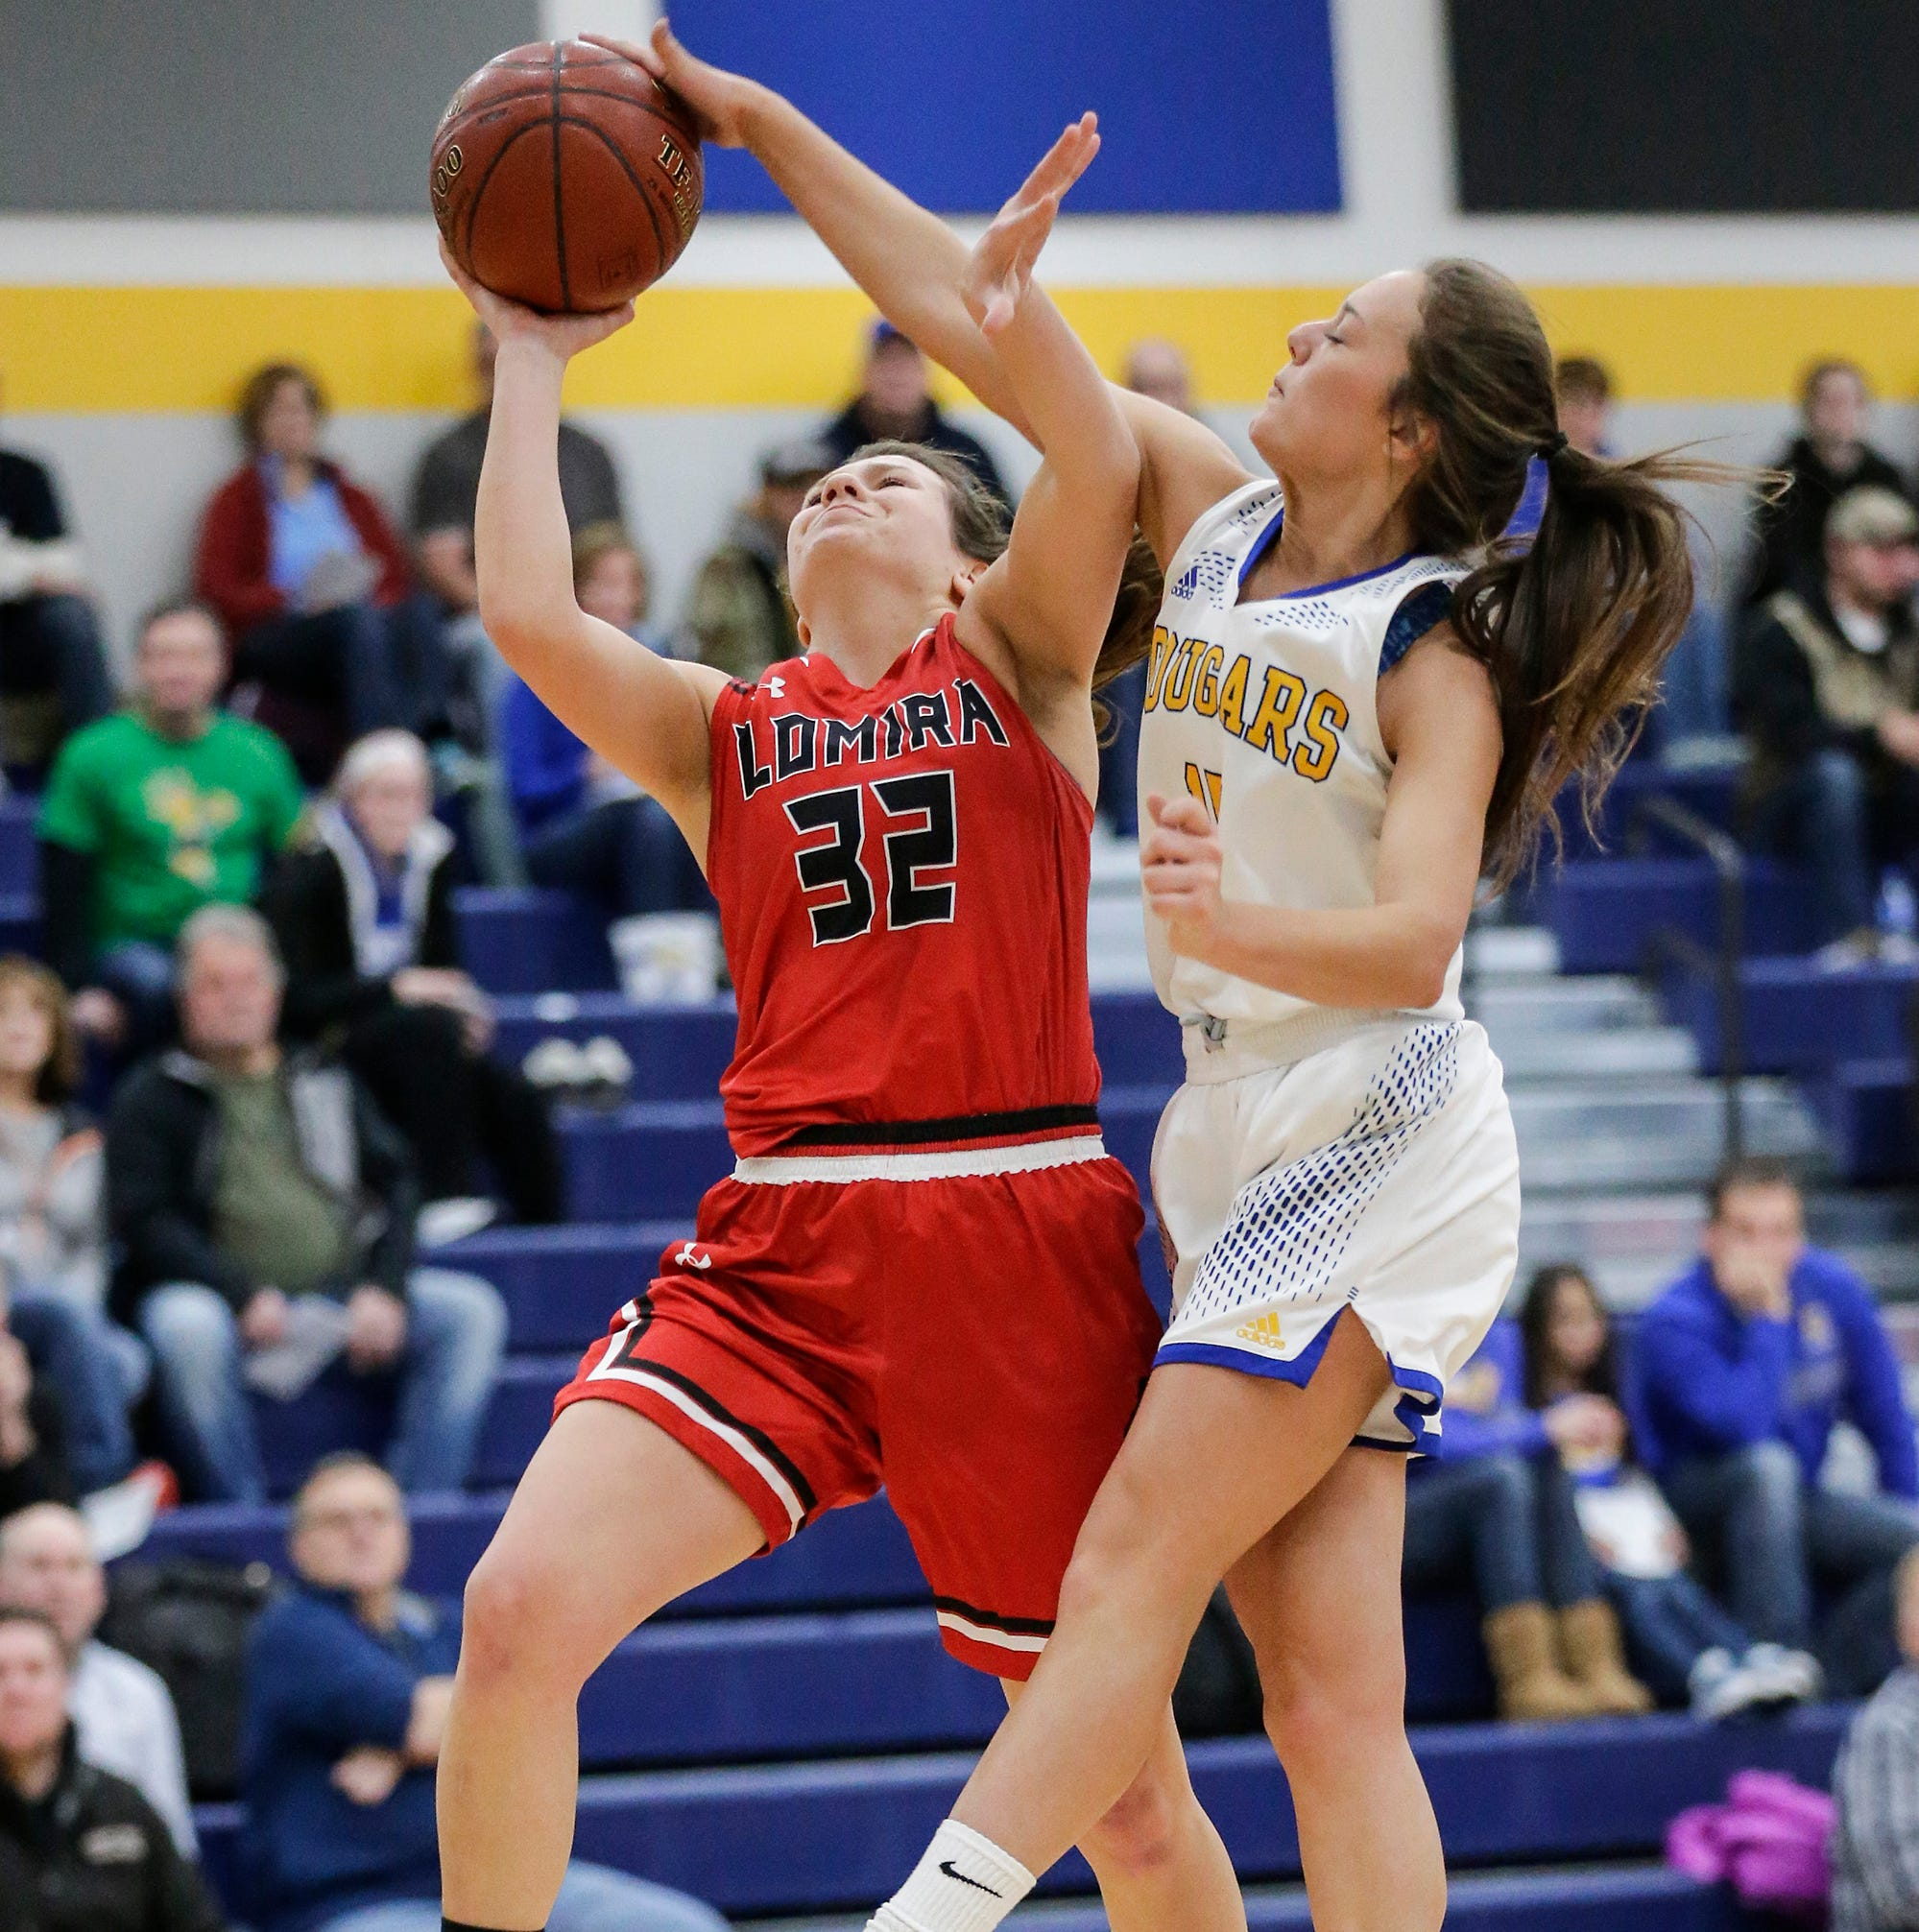 High school: Fond du Lac area girls basketball programs begin regional play